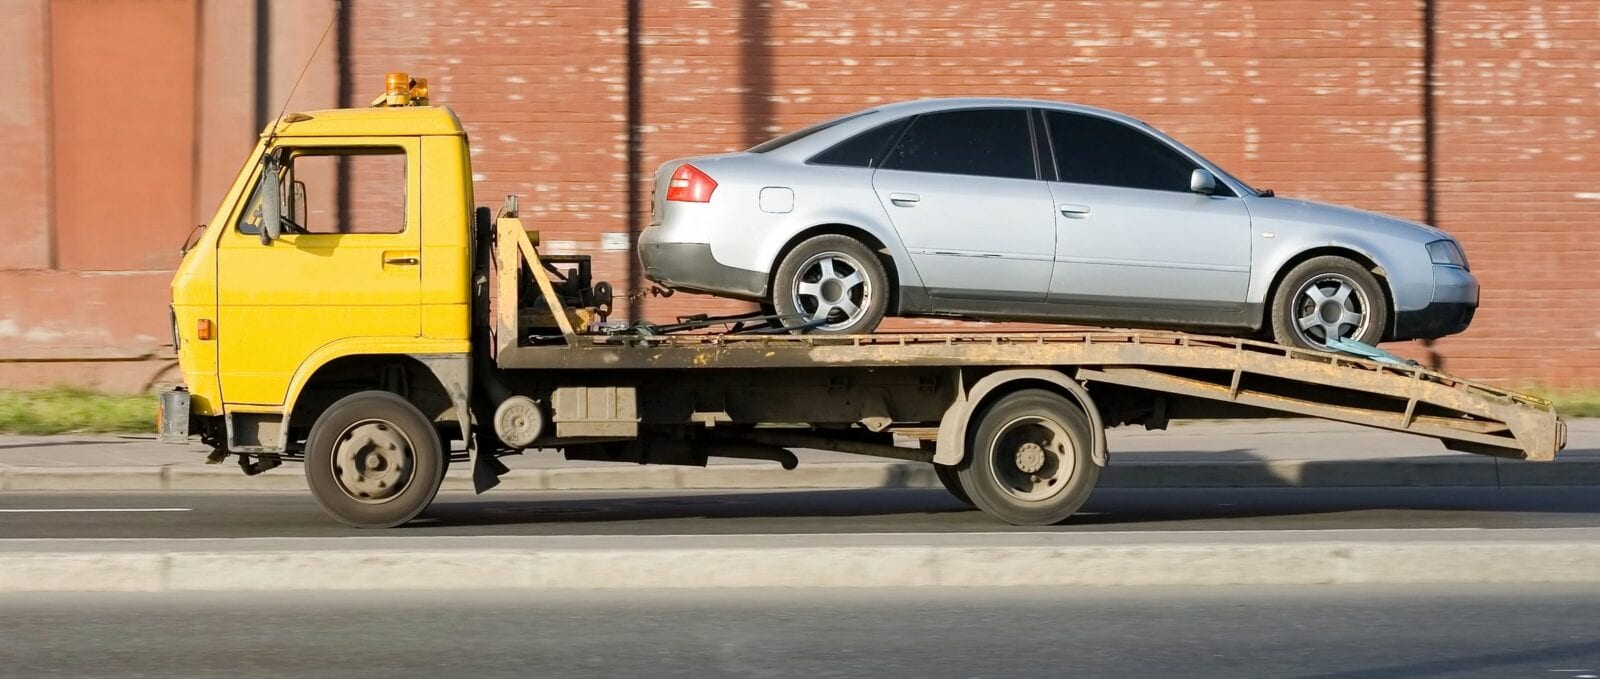 Tow Truck Financing and working capital solutions for the tow truck industry